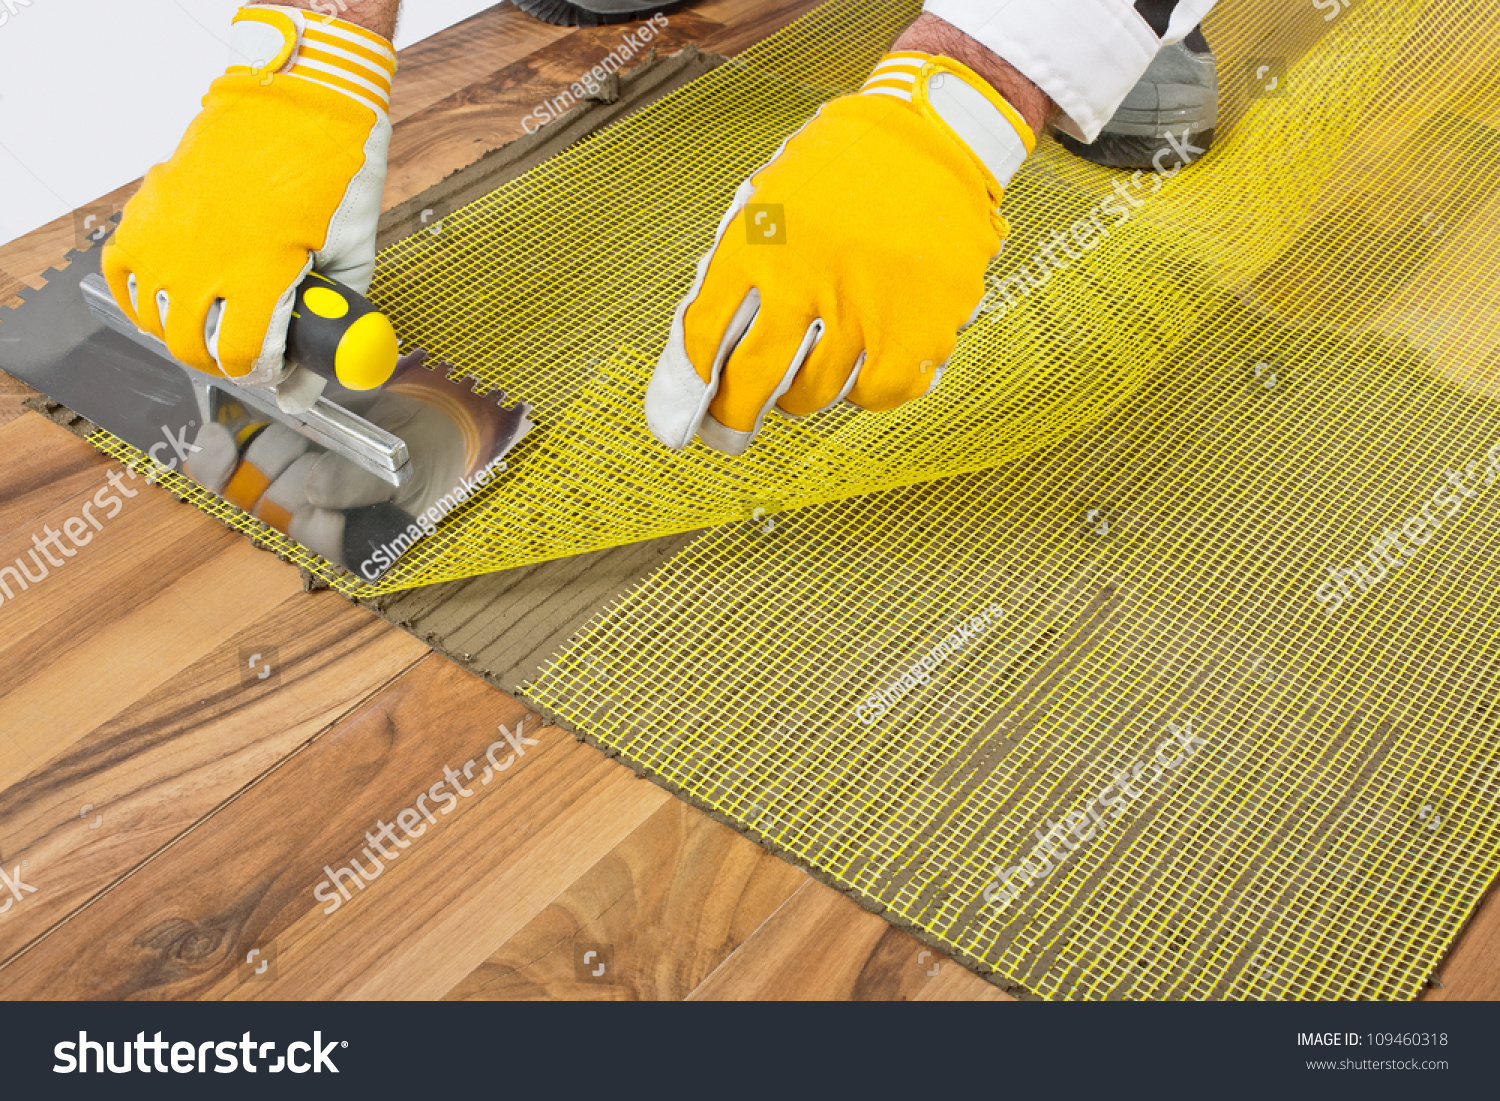 Flexible floor tile adhesive image collections tile flooring flexible tile flooring image collections tile flooring design ideas flexible floor tile adhesive images tile flooring dailygadgetfo Choice Image